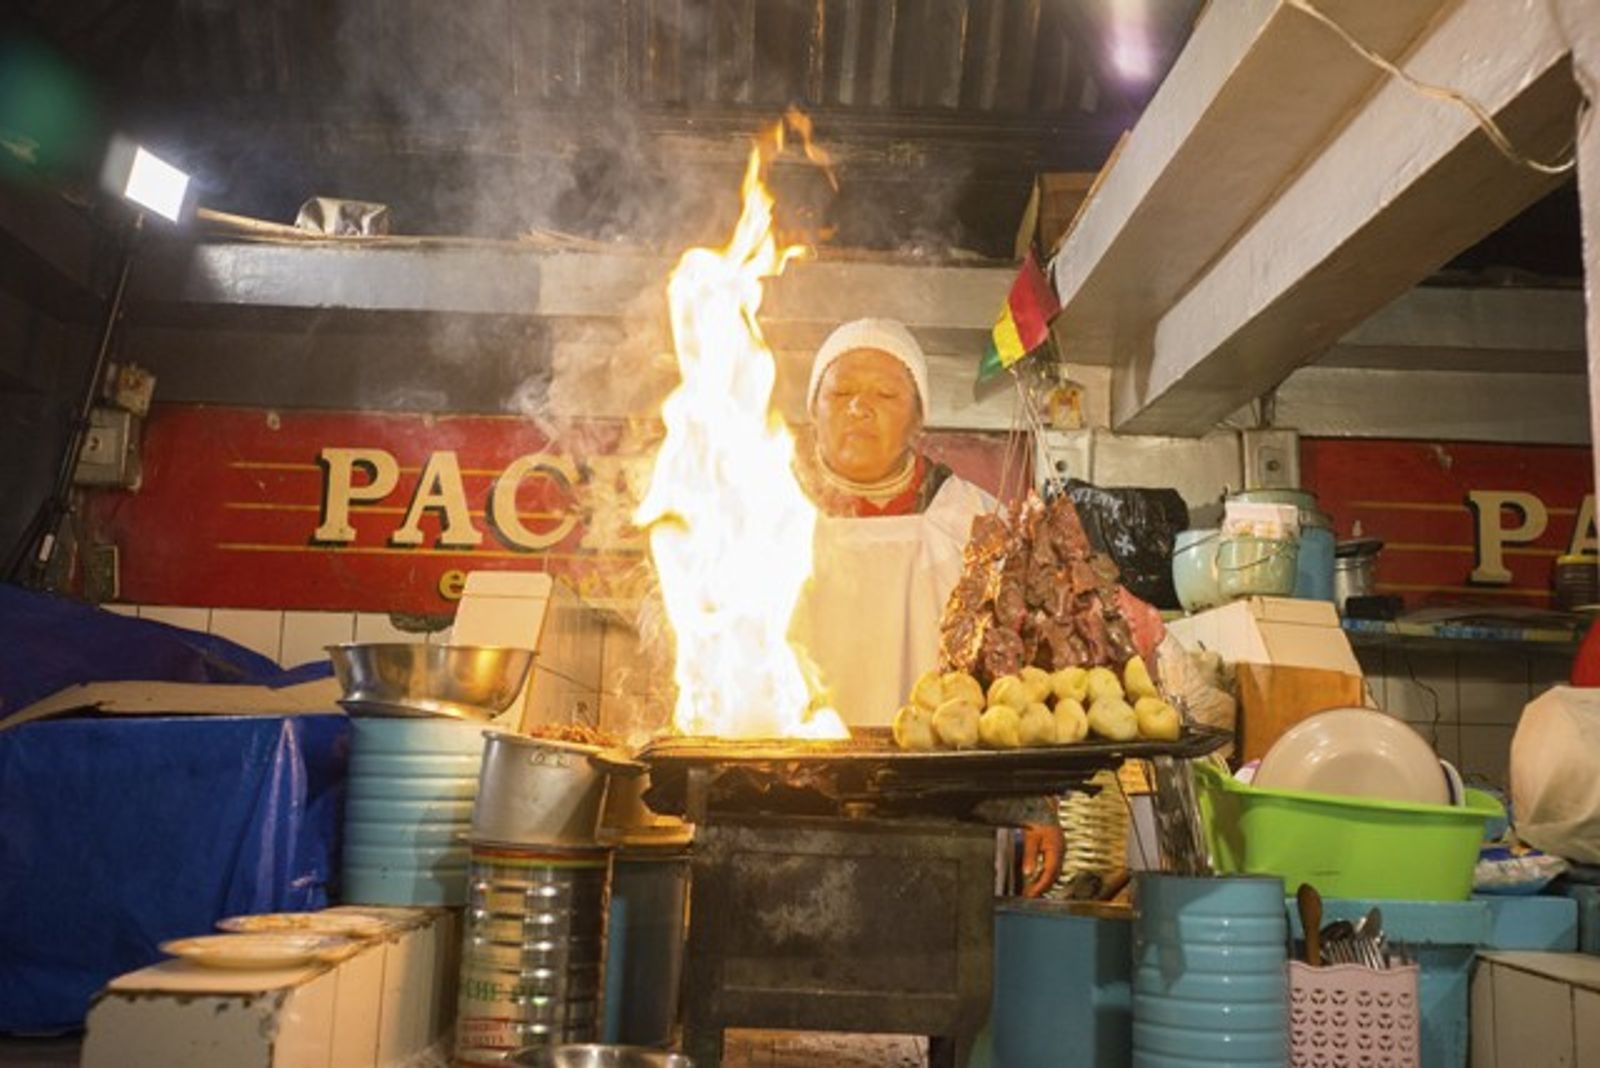 At the chef's table: Kamilla Seidler in Bolivia